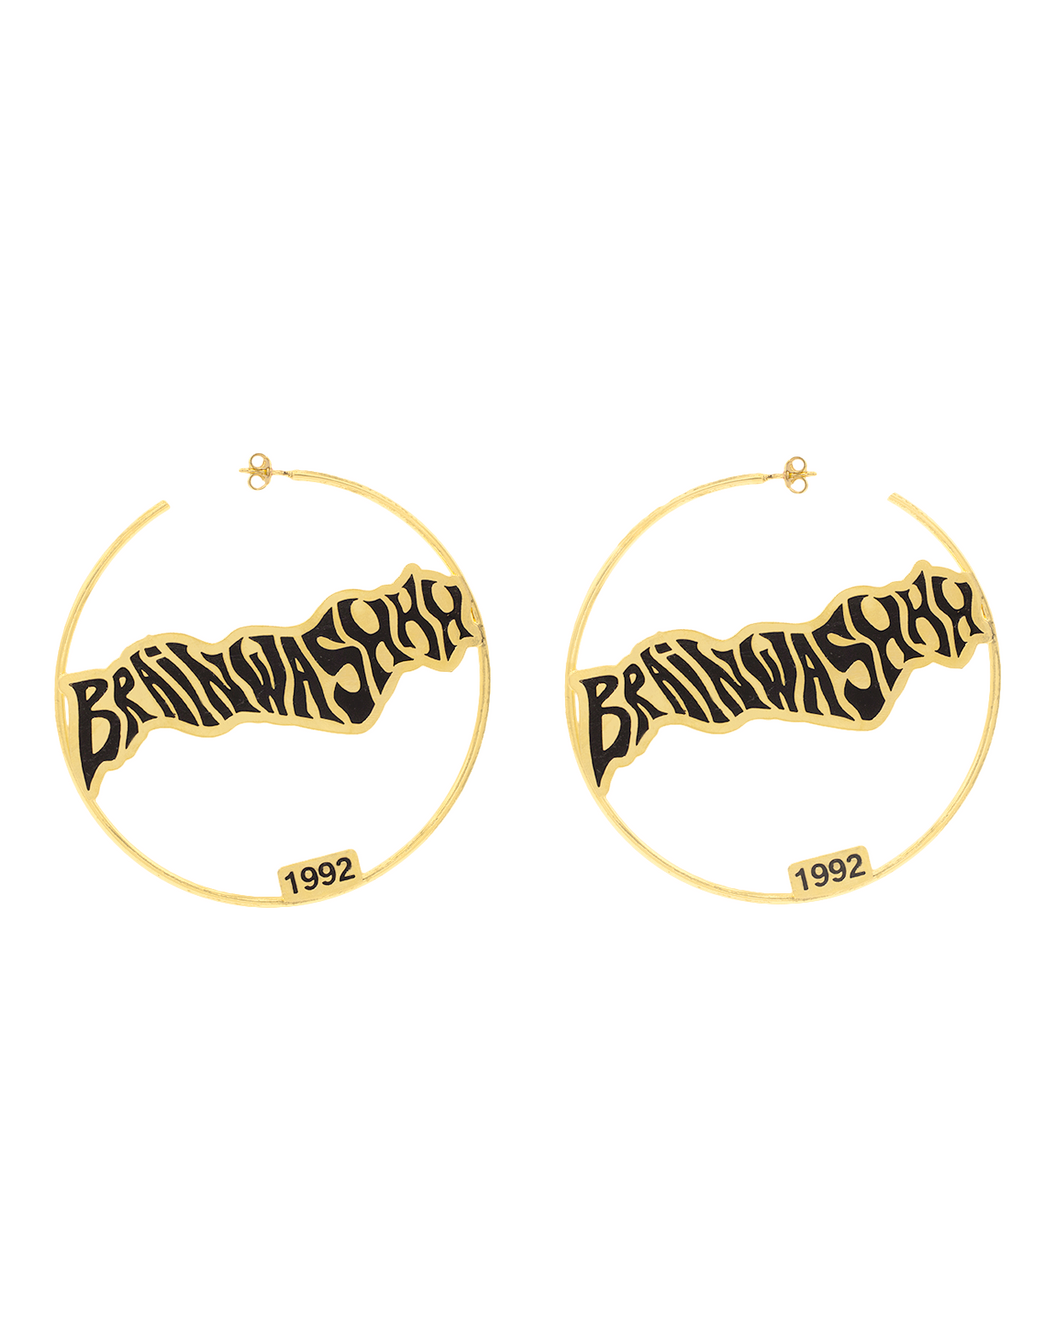 Brainwashhh Hoop Earrings available in Gold & Silver plating